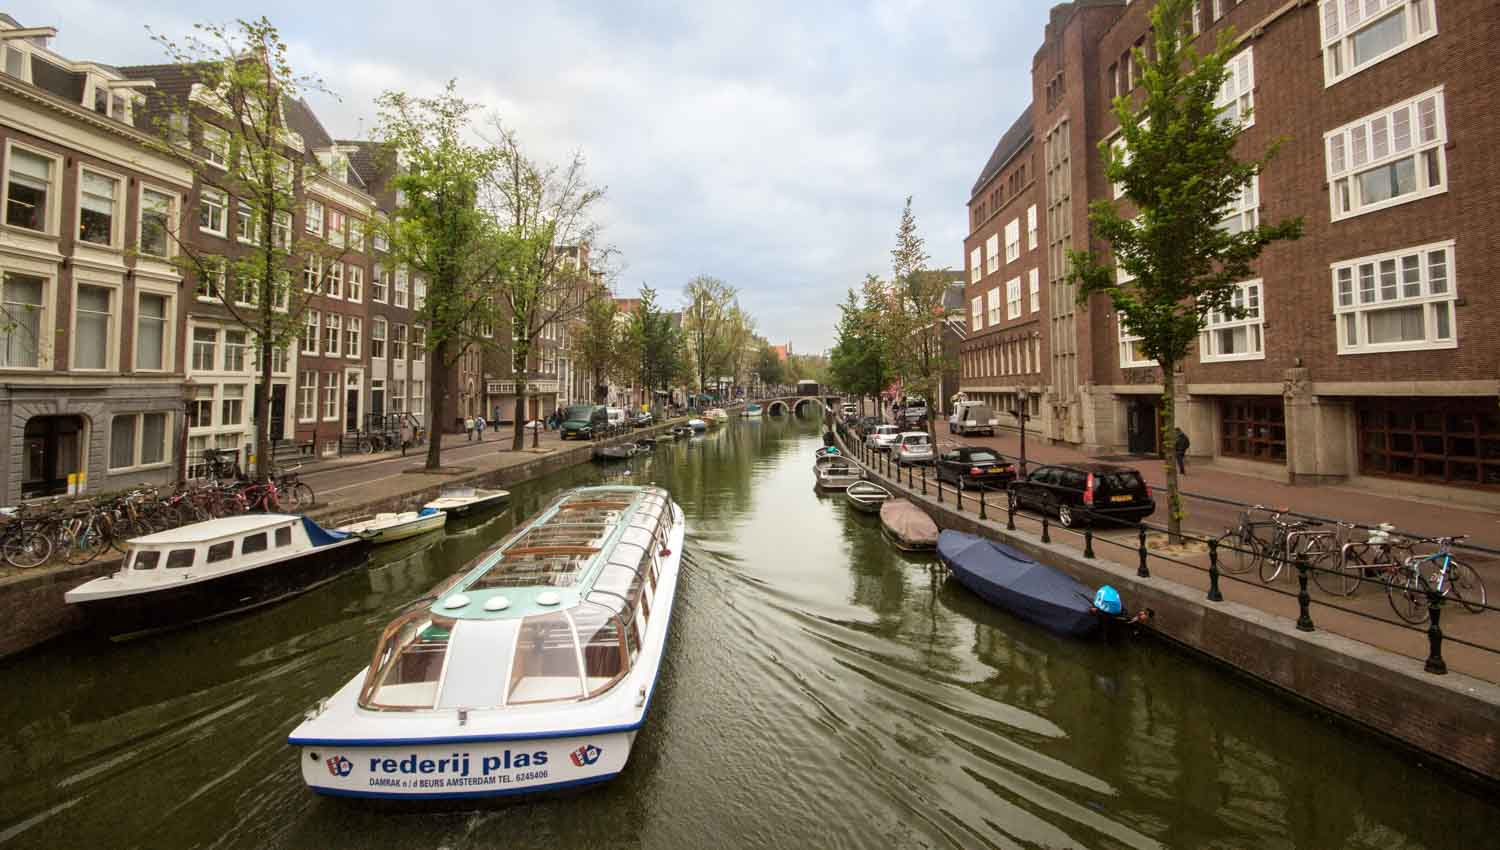 The canals ushered in the Dutch Golden Age